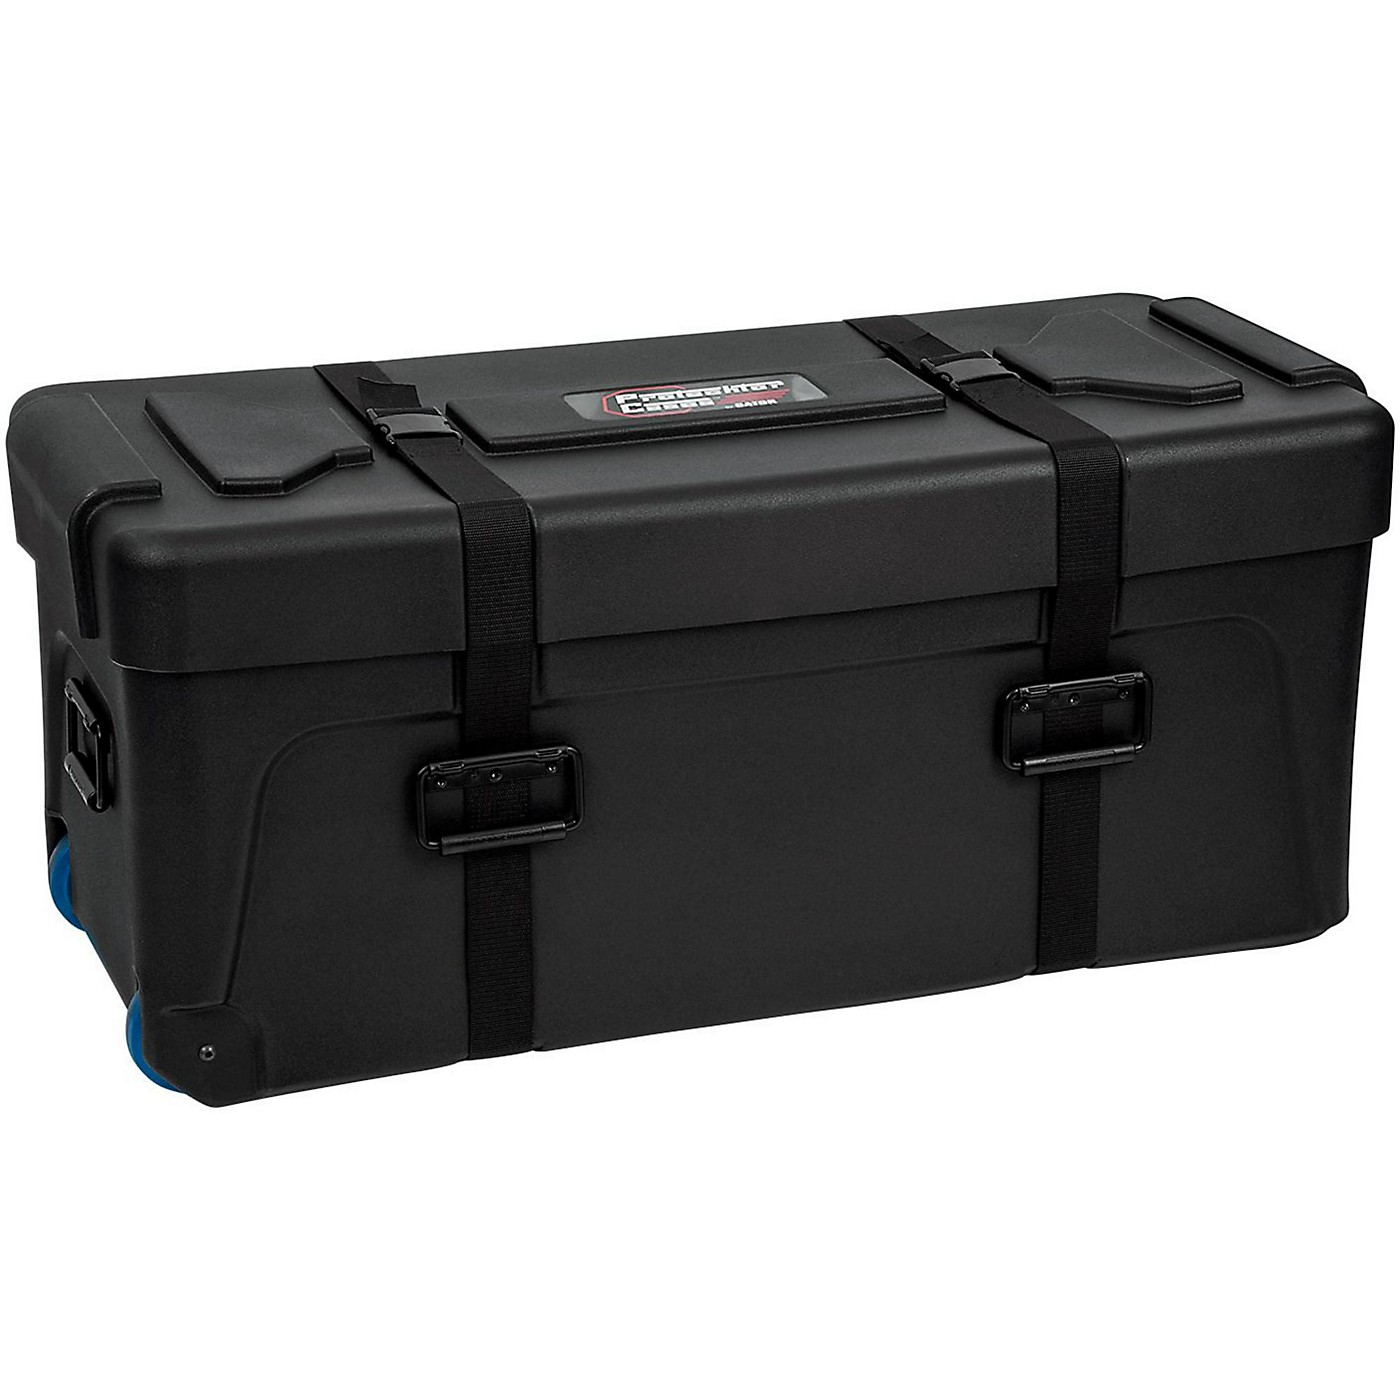 Gator Trap Case with Full-Length Storage Tray thumbnail